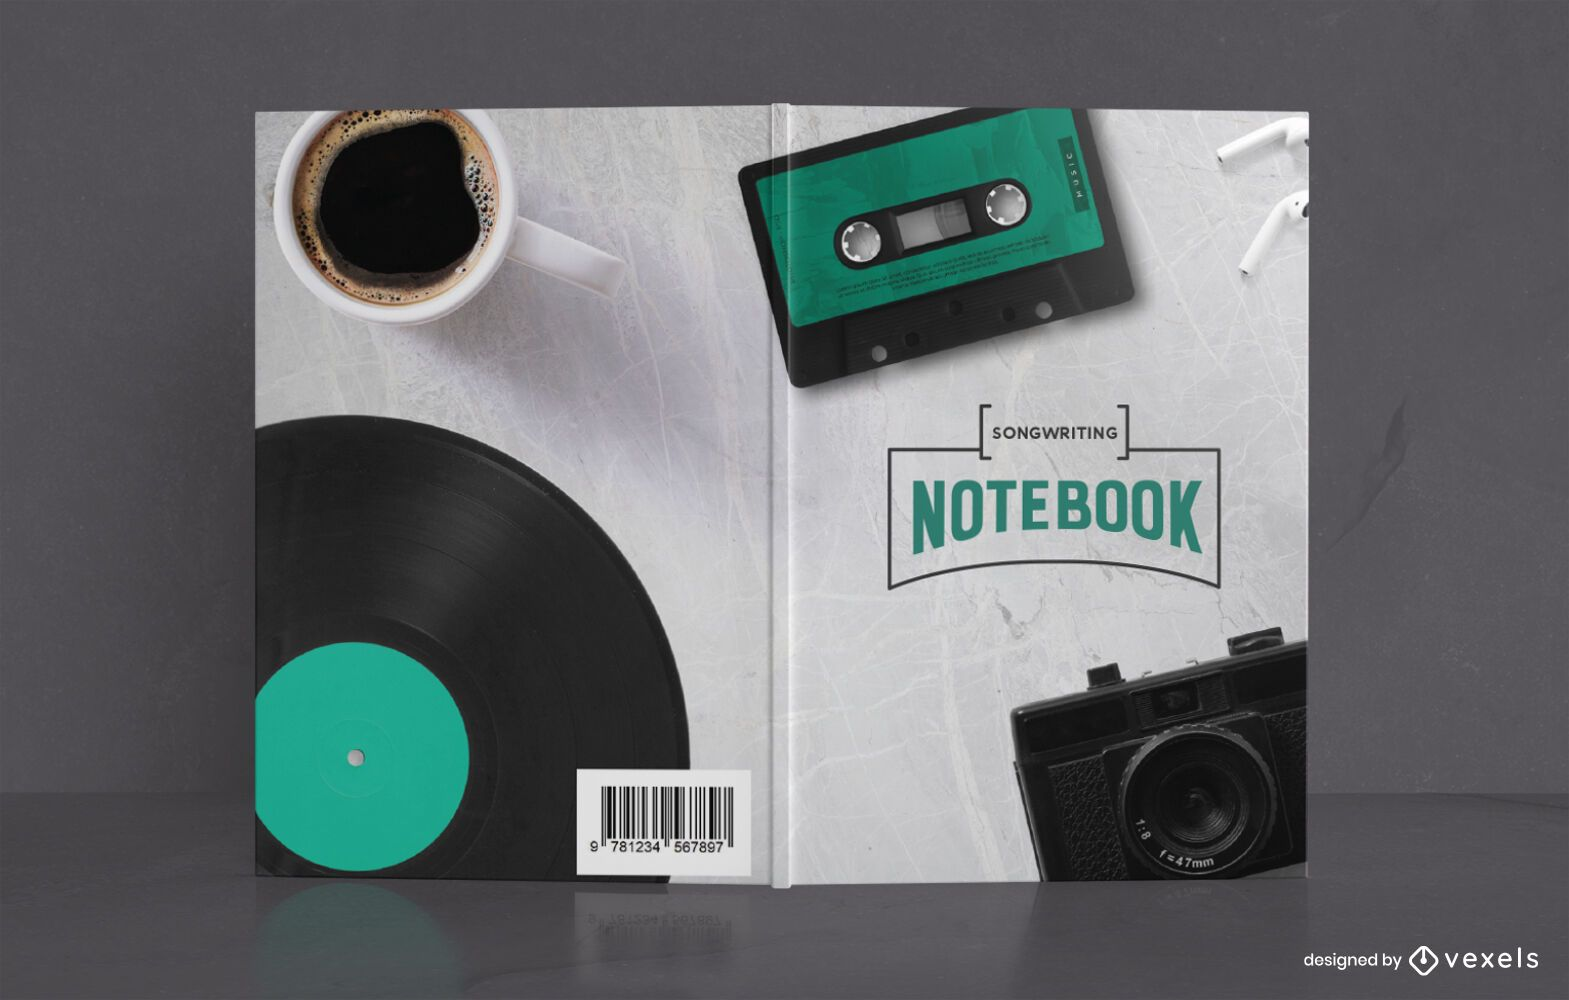 Songwriting Notebook Book Cover Design